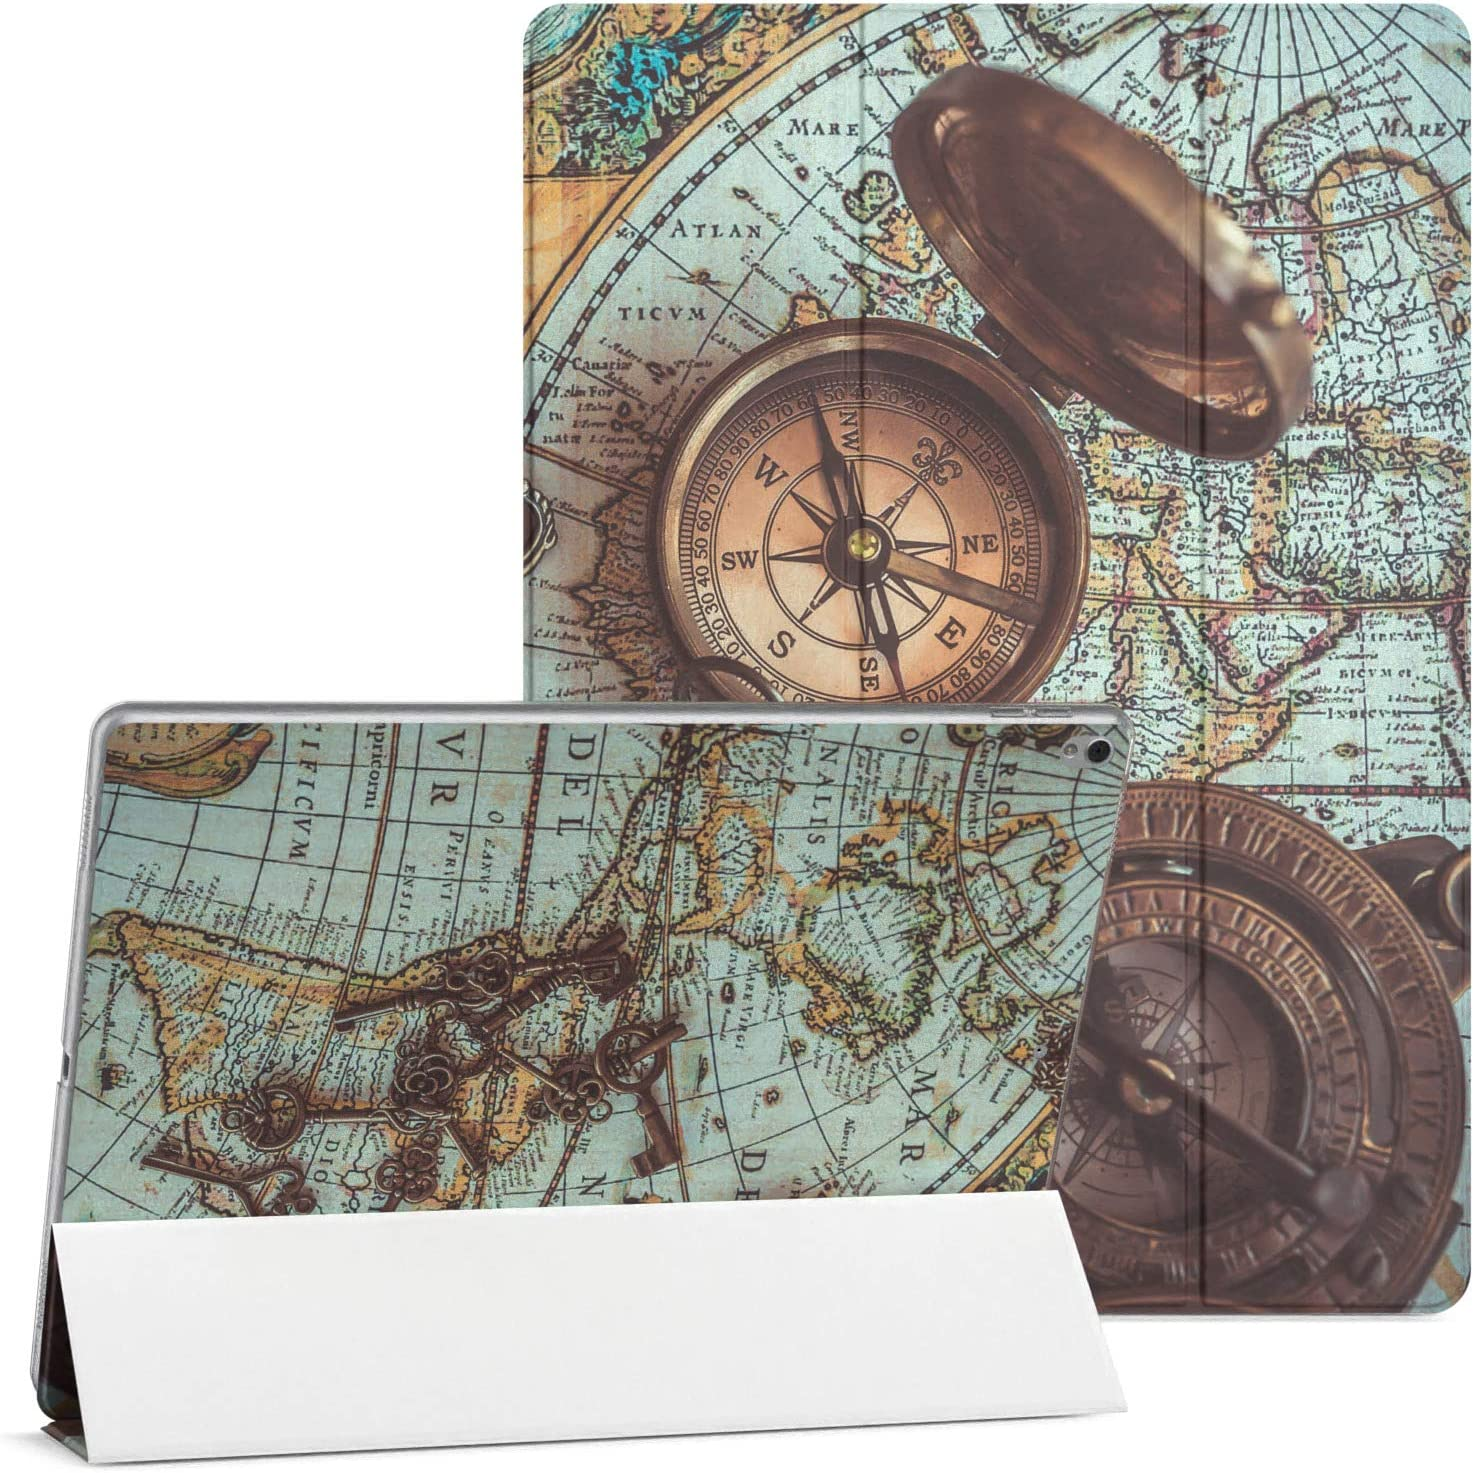 Mertak Case Compatible with iPad Pro 11 2020 12.9 2019 2018 Air 3 2 10.2 8th 7th Gen Mini 5 4 10.5 inch 9.7 Smart Cover Flip Clear Old Vintage World Map Compass Magnetic Antique Nautical